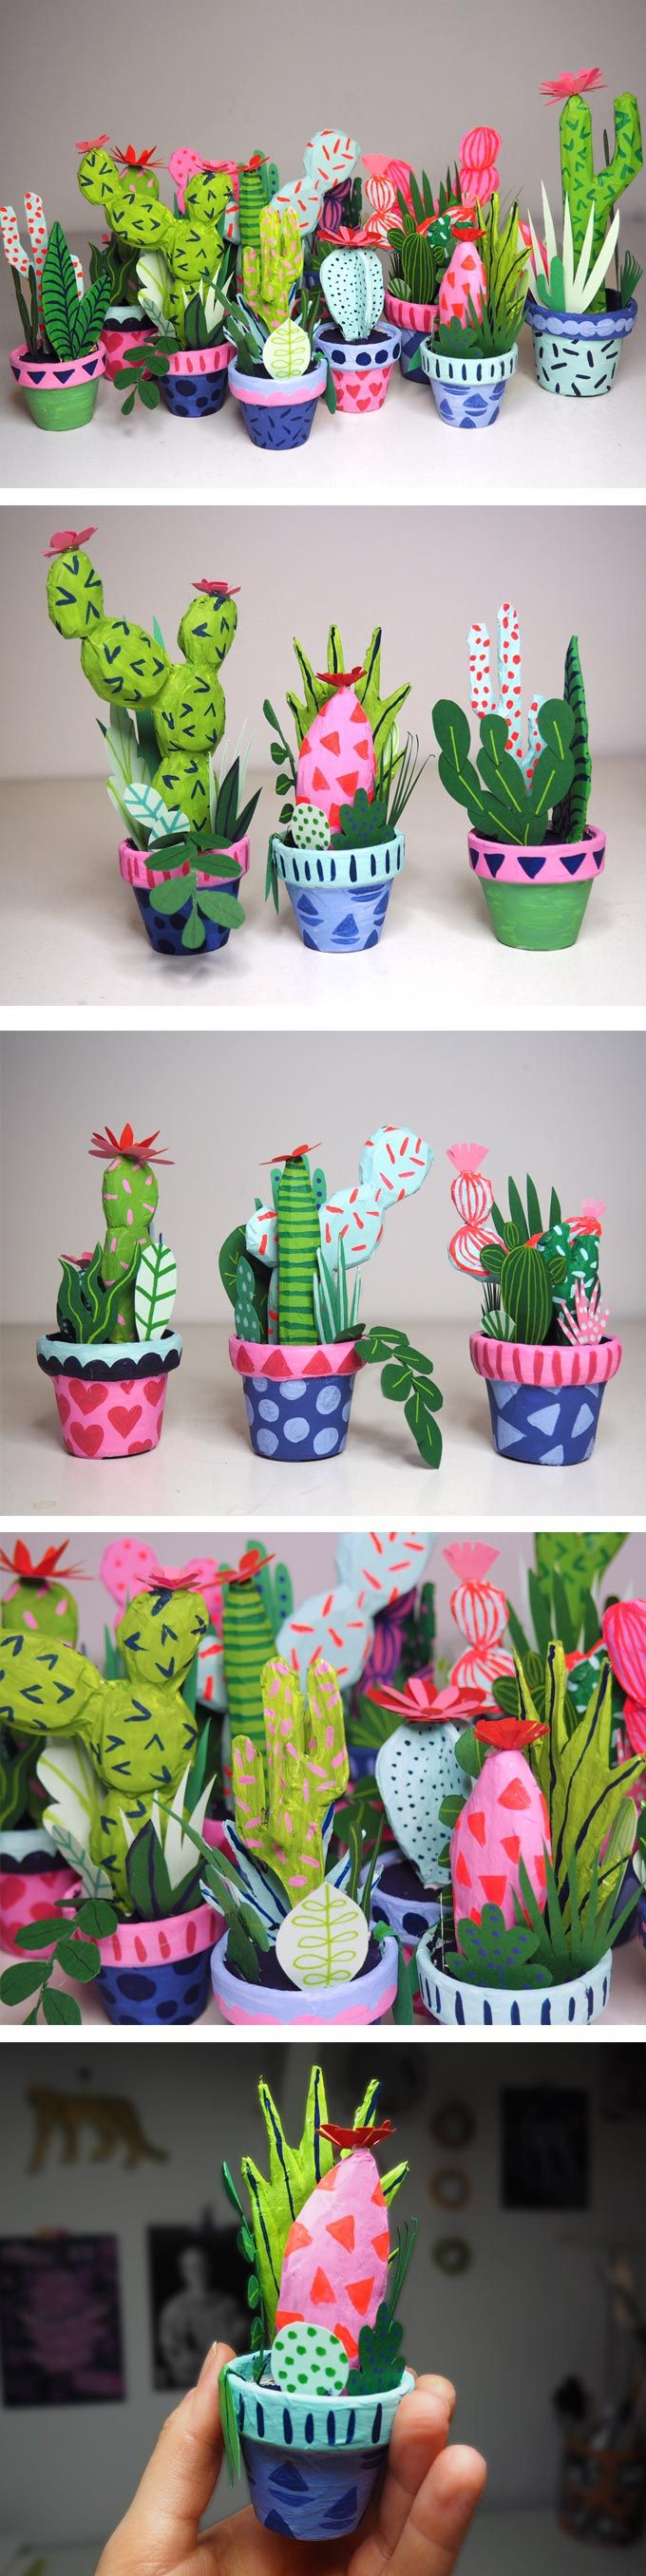 Kim Sielbeck's Paper Cacti to Hold in the Palm of Your Hand